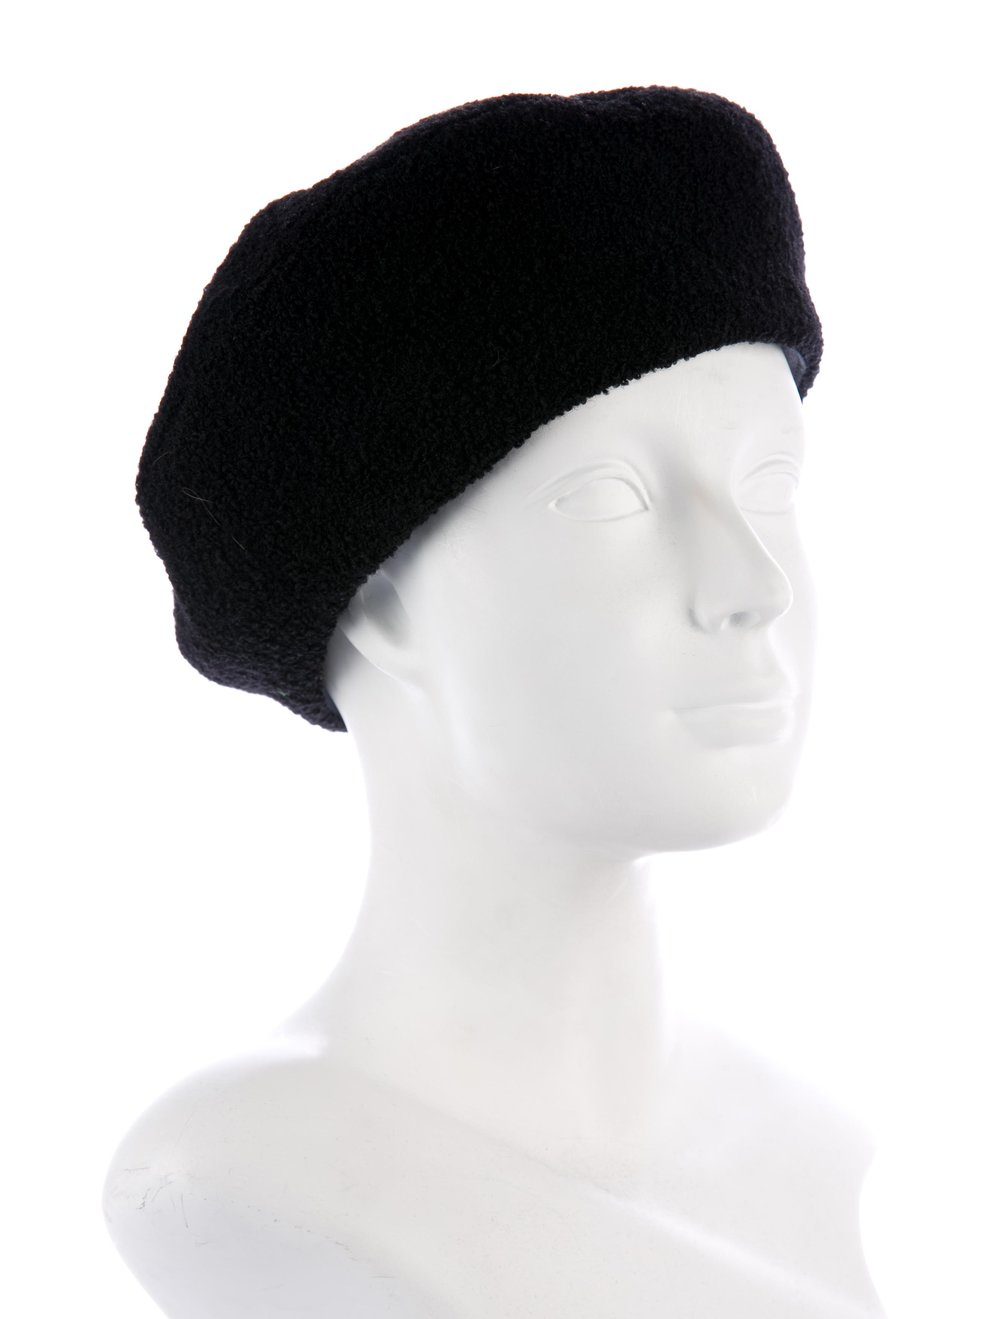 - EUGENIA KIM Textured Wool Beret$75.00